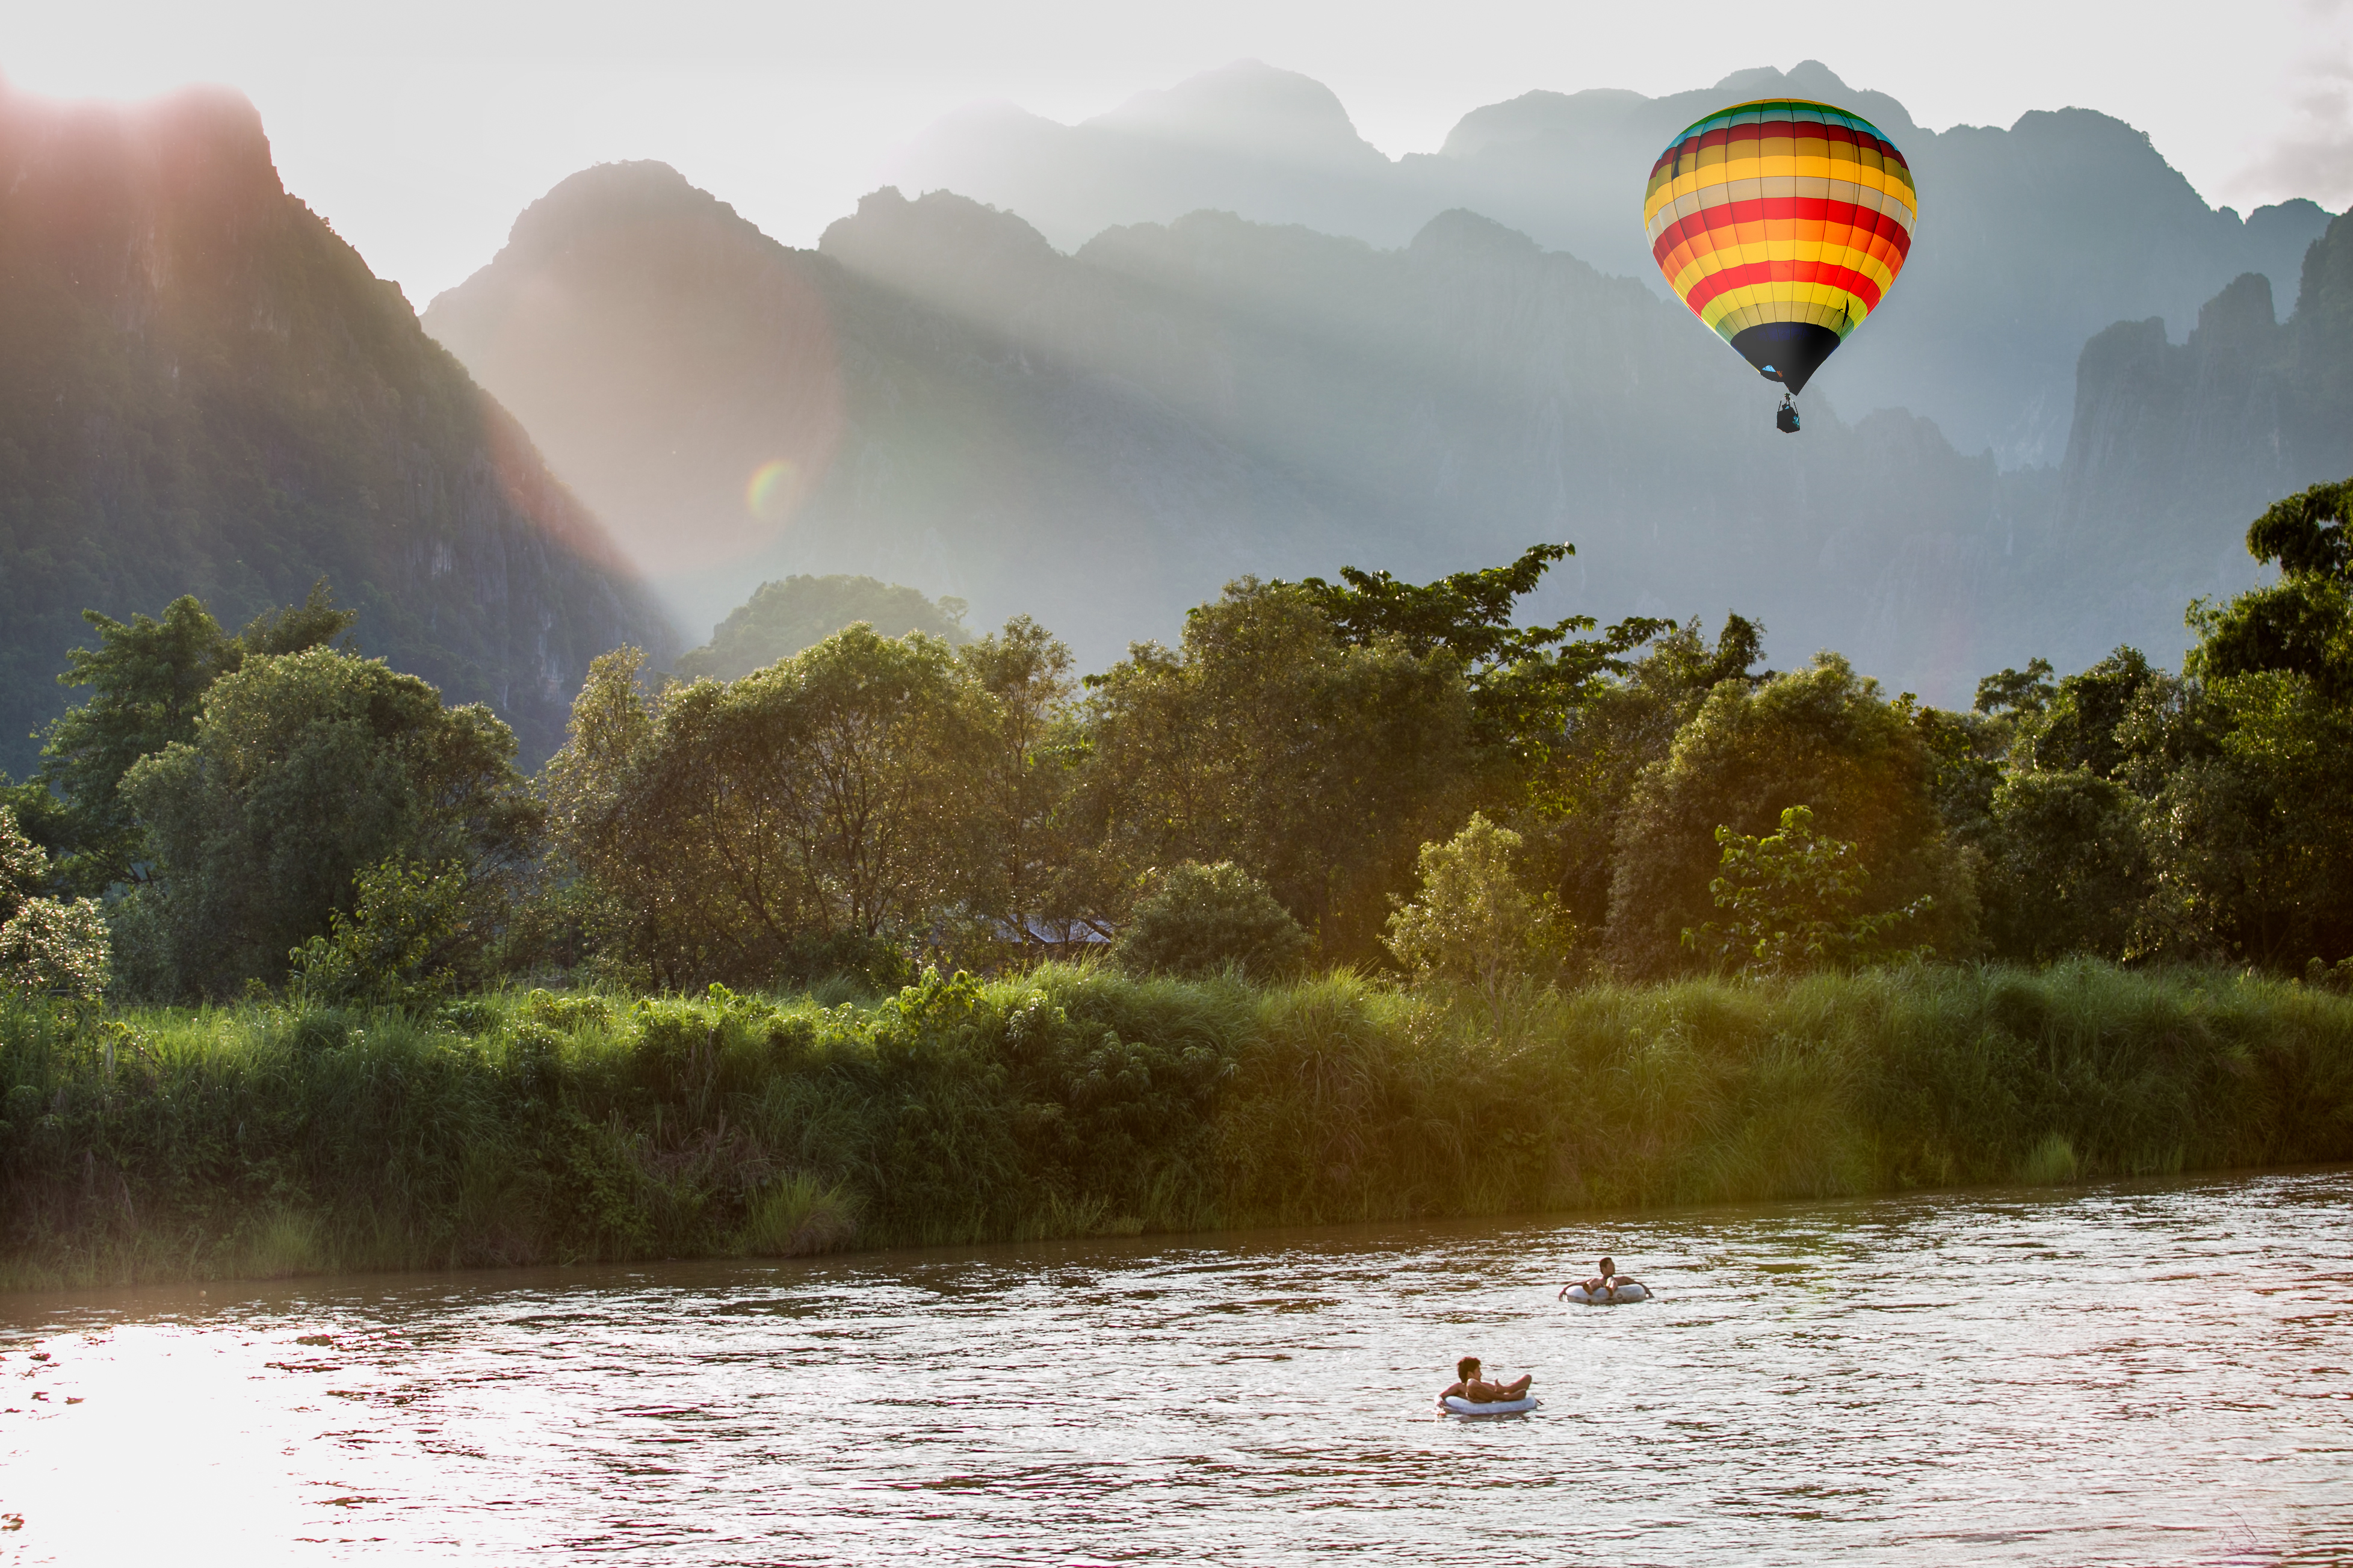 TIPS FOR TUBING IN VANG VIENG (FOR PARTY LOVERS)